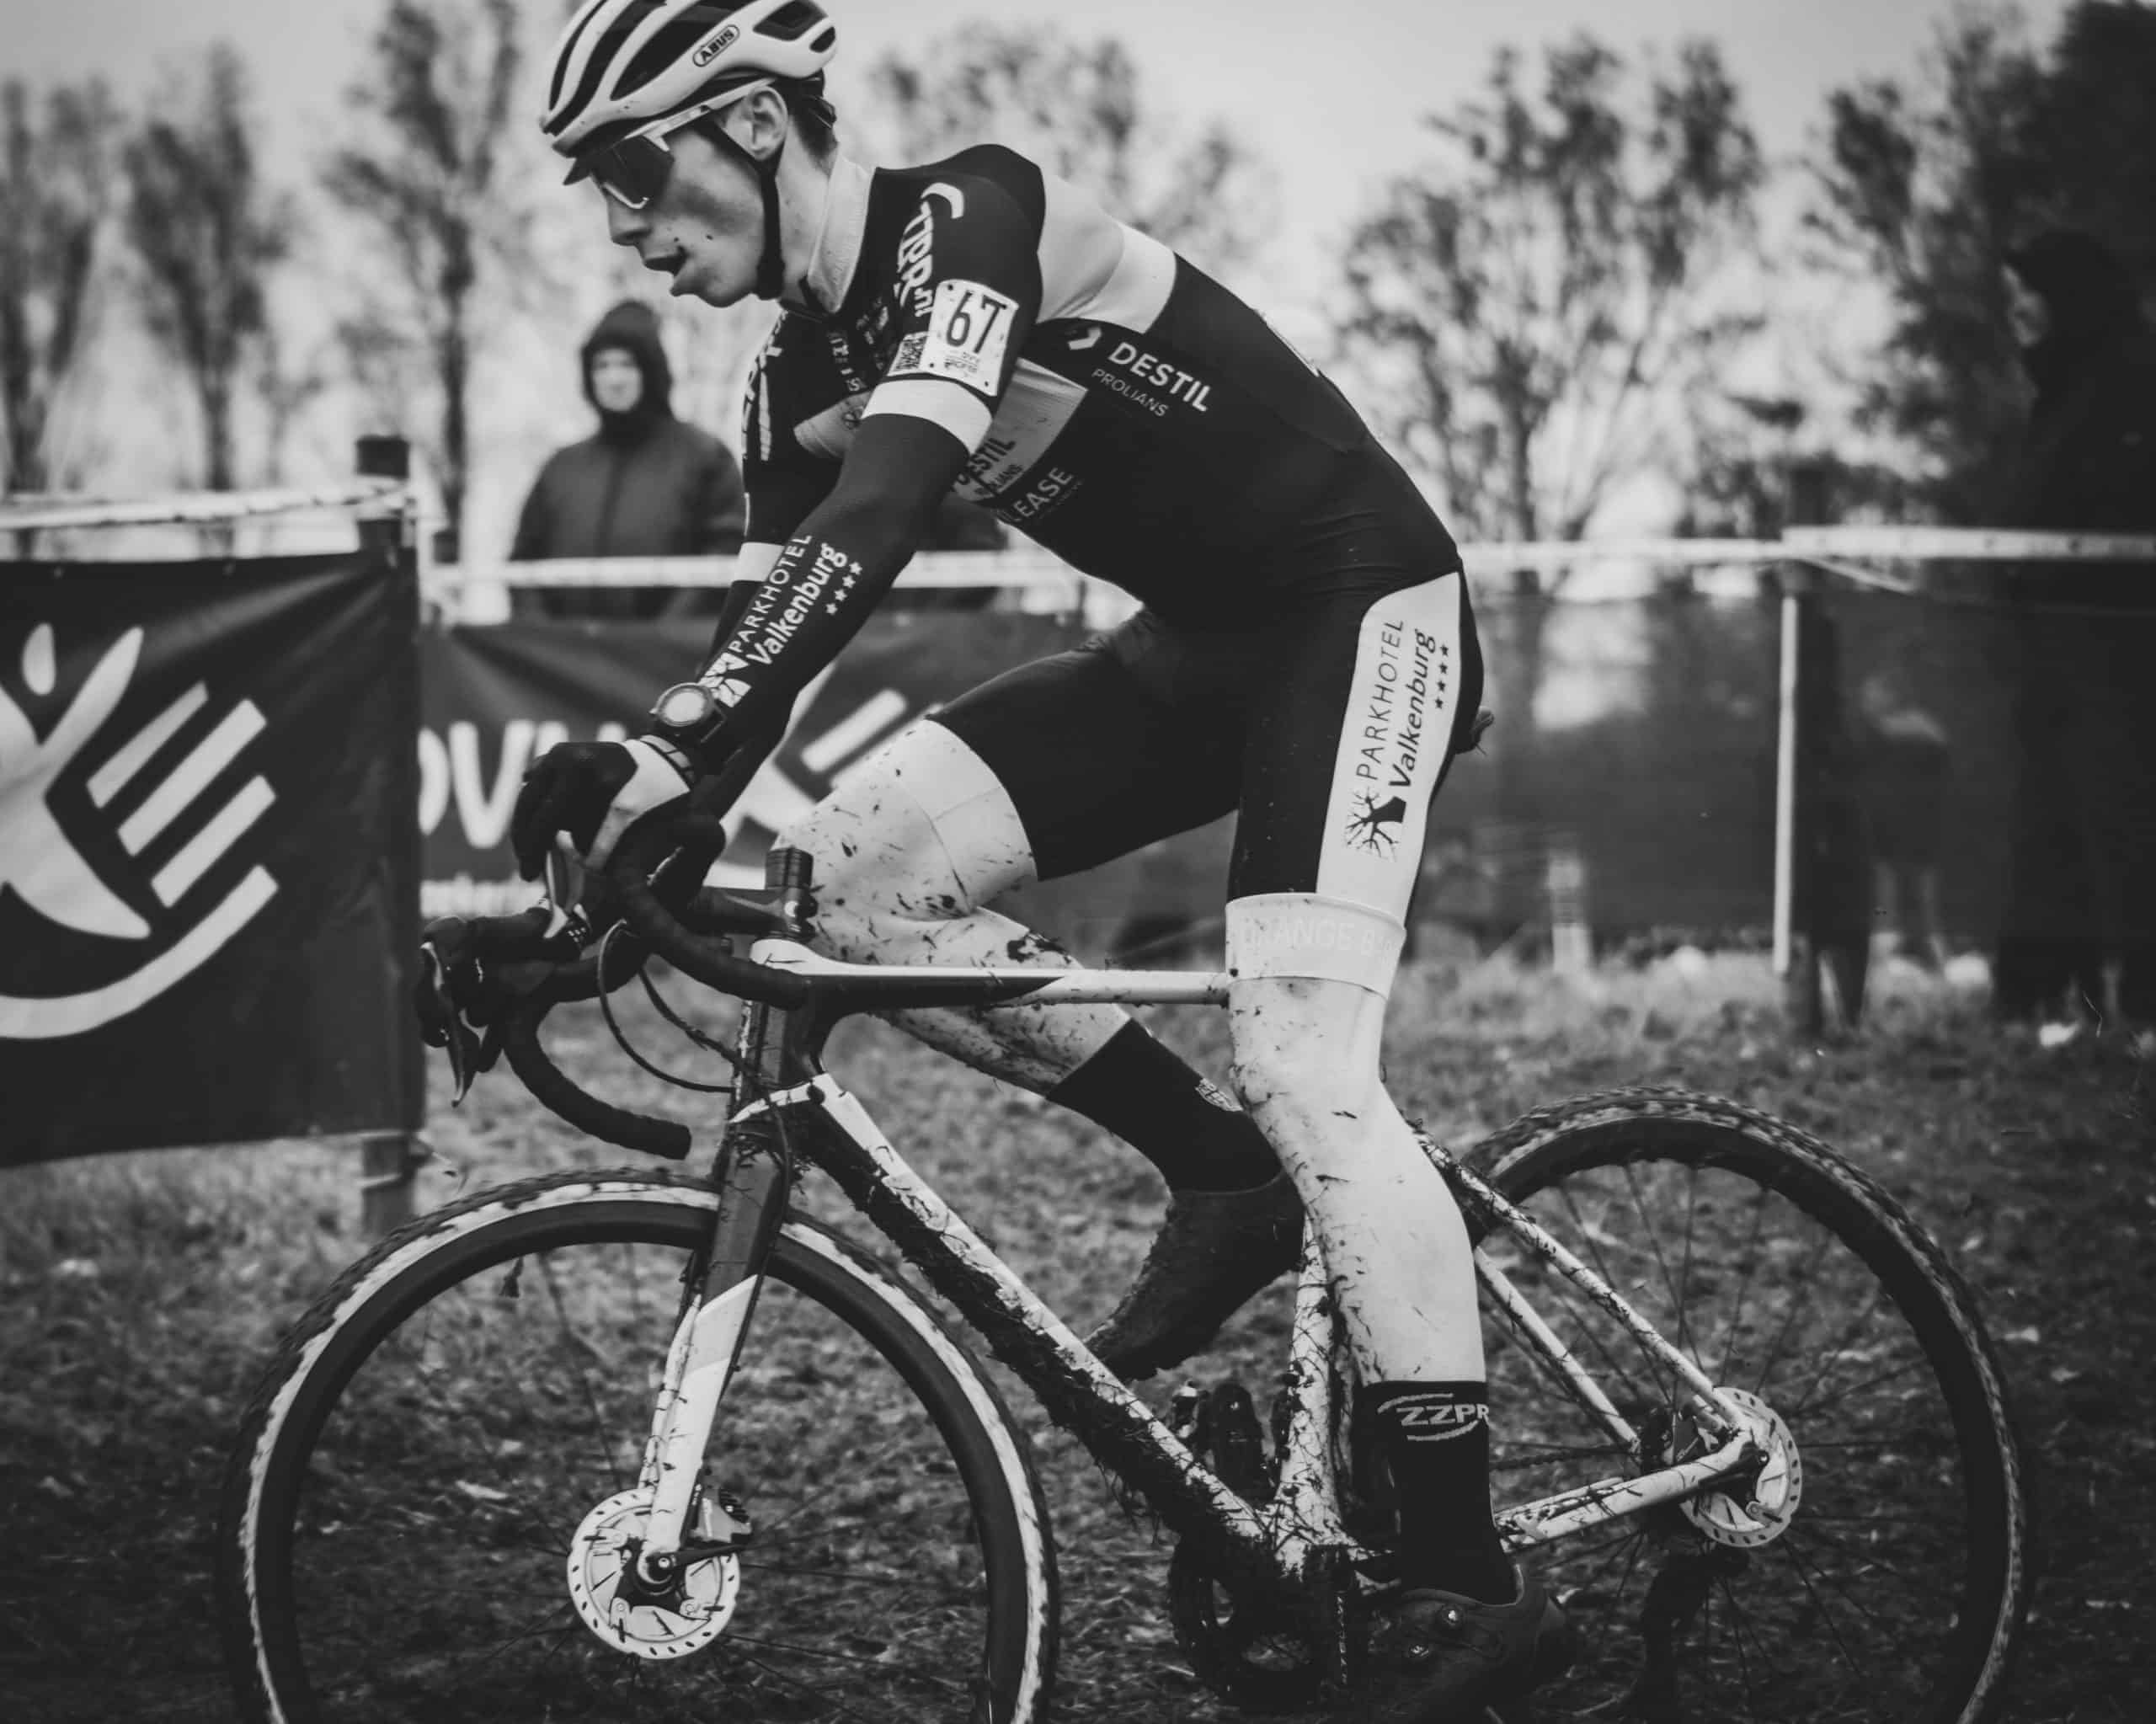 cyclocross road bikes are great for going off road but maintaining speed.